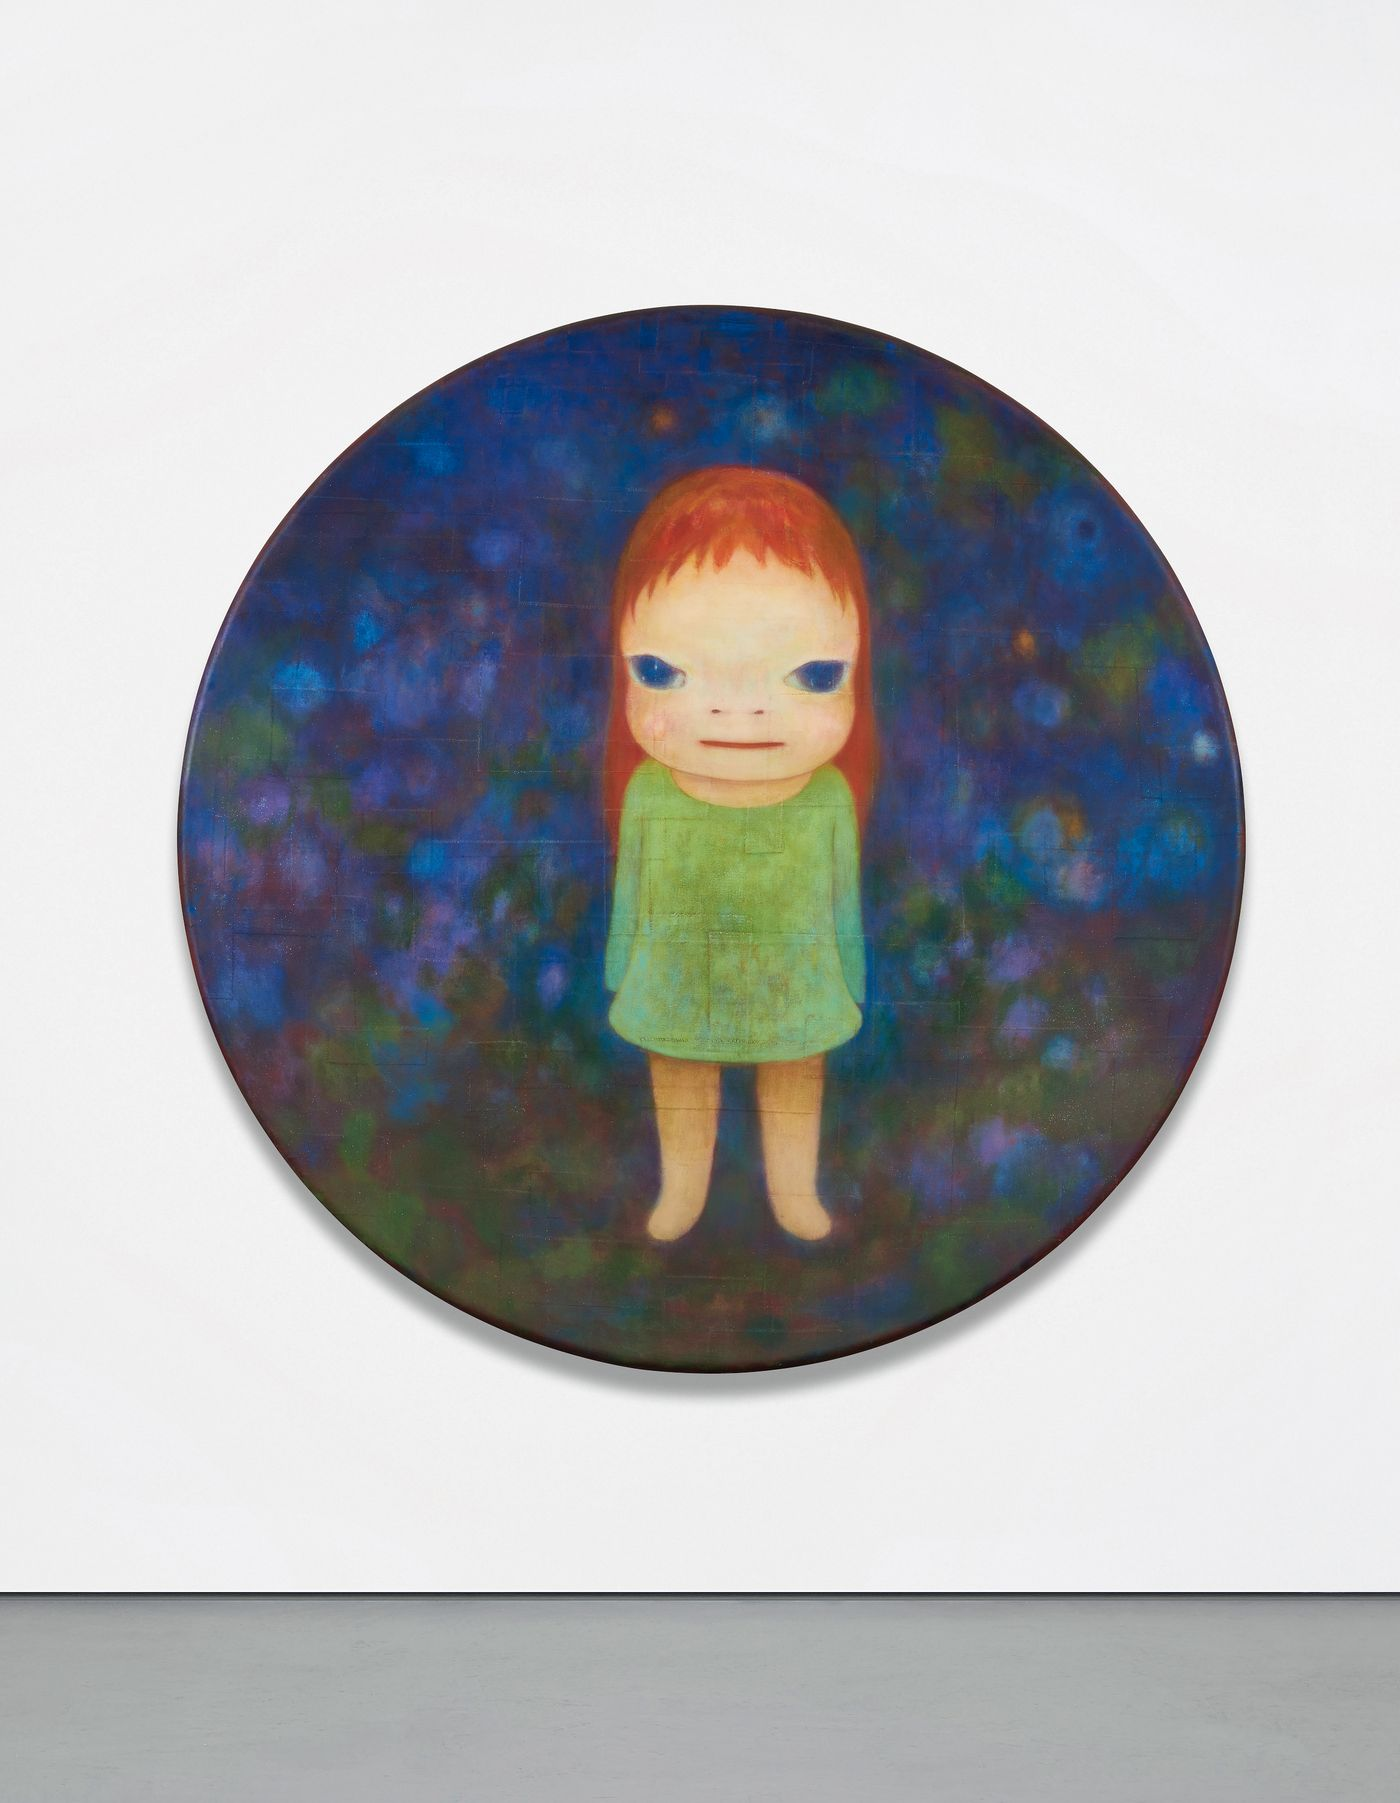 Yoshitomo Nara's 'Missing in Action' characterizes the artist's complex interpretations of childhood, nostalgia and solitude.